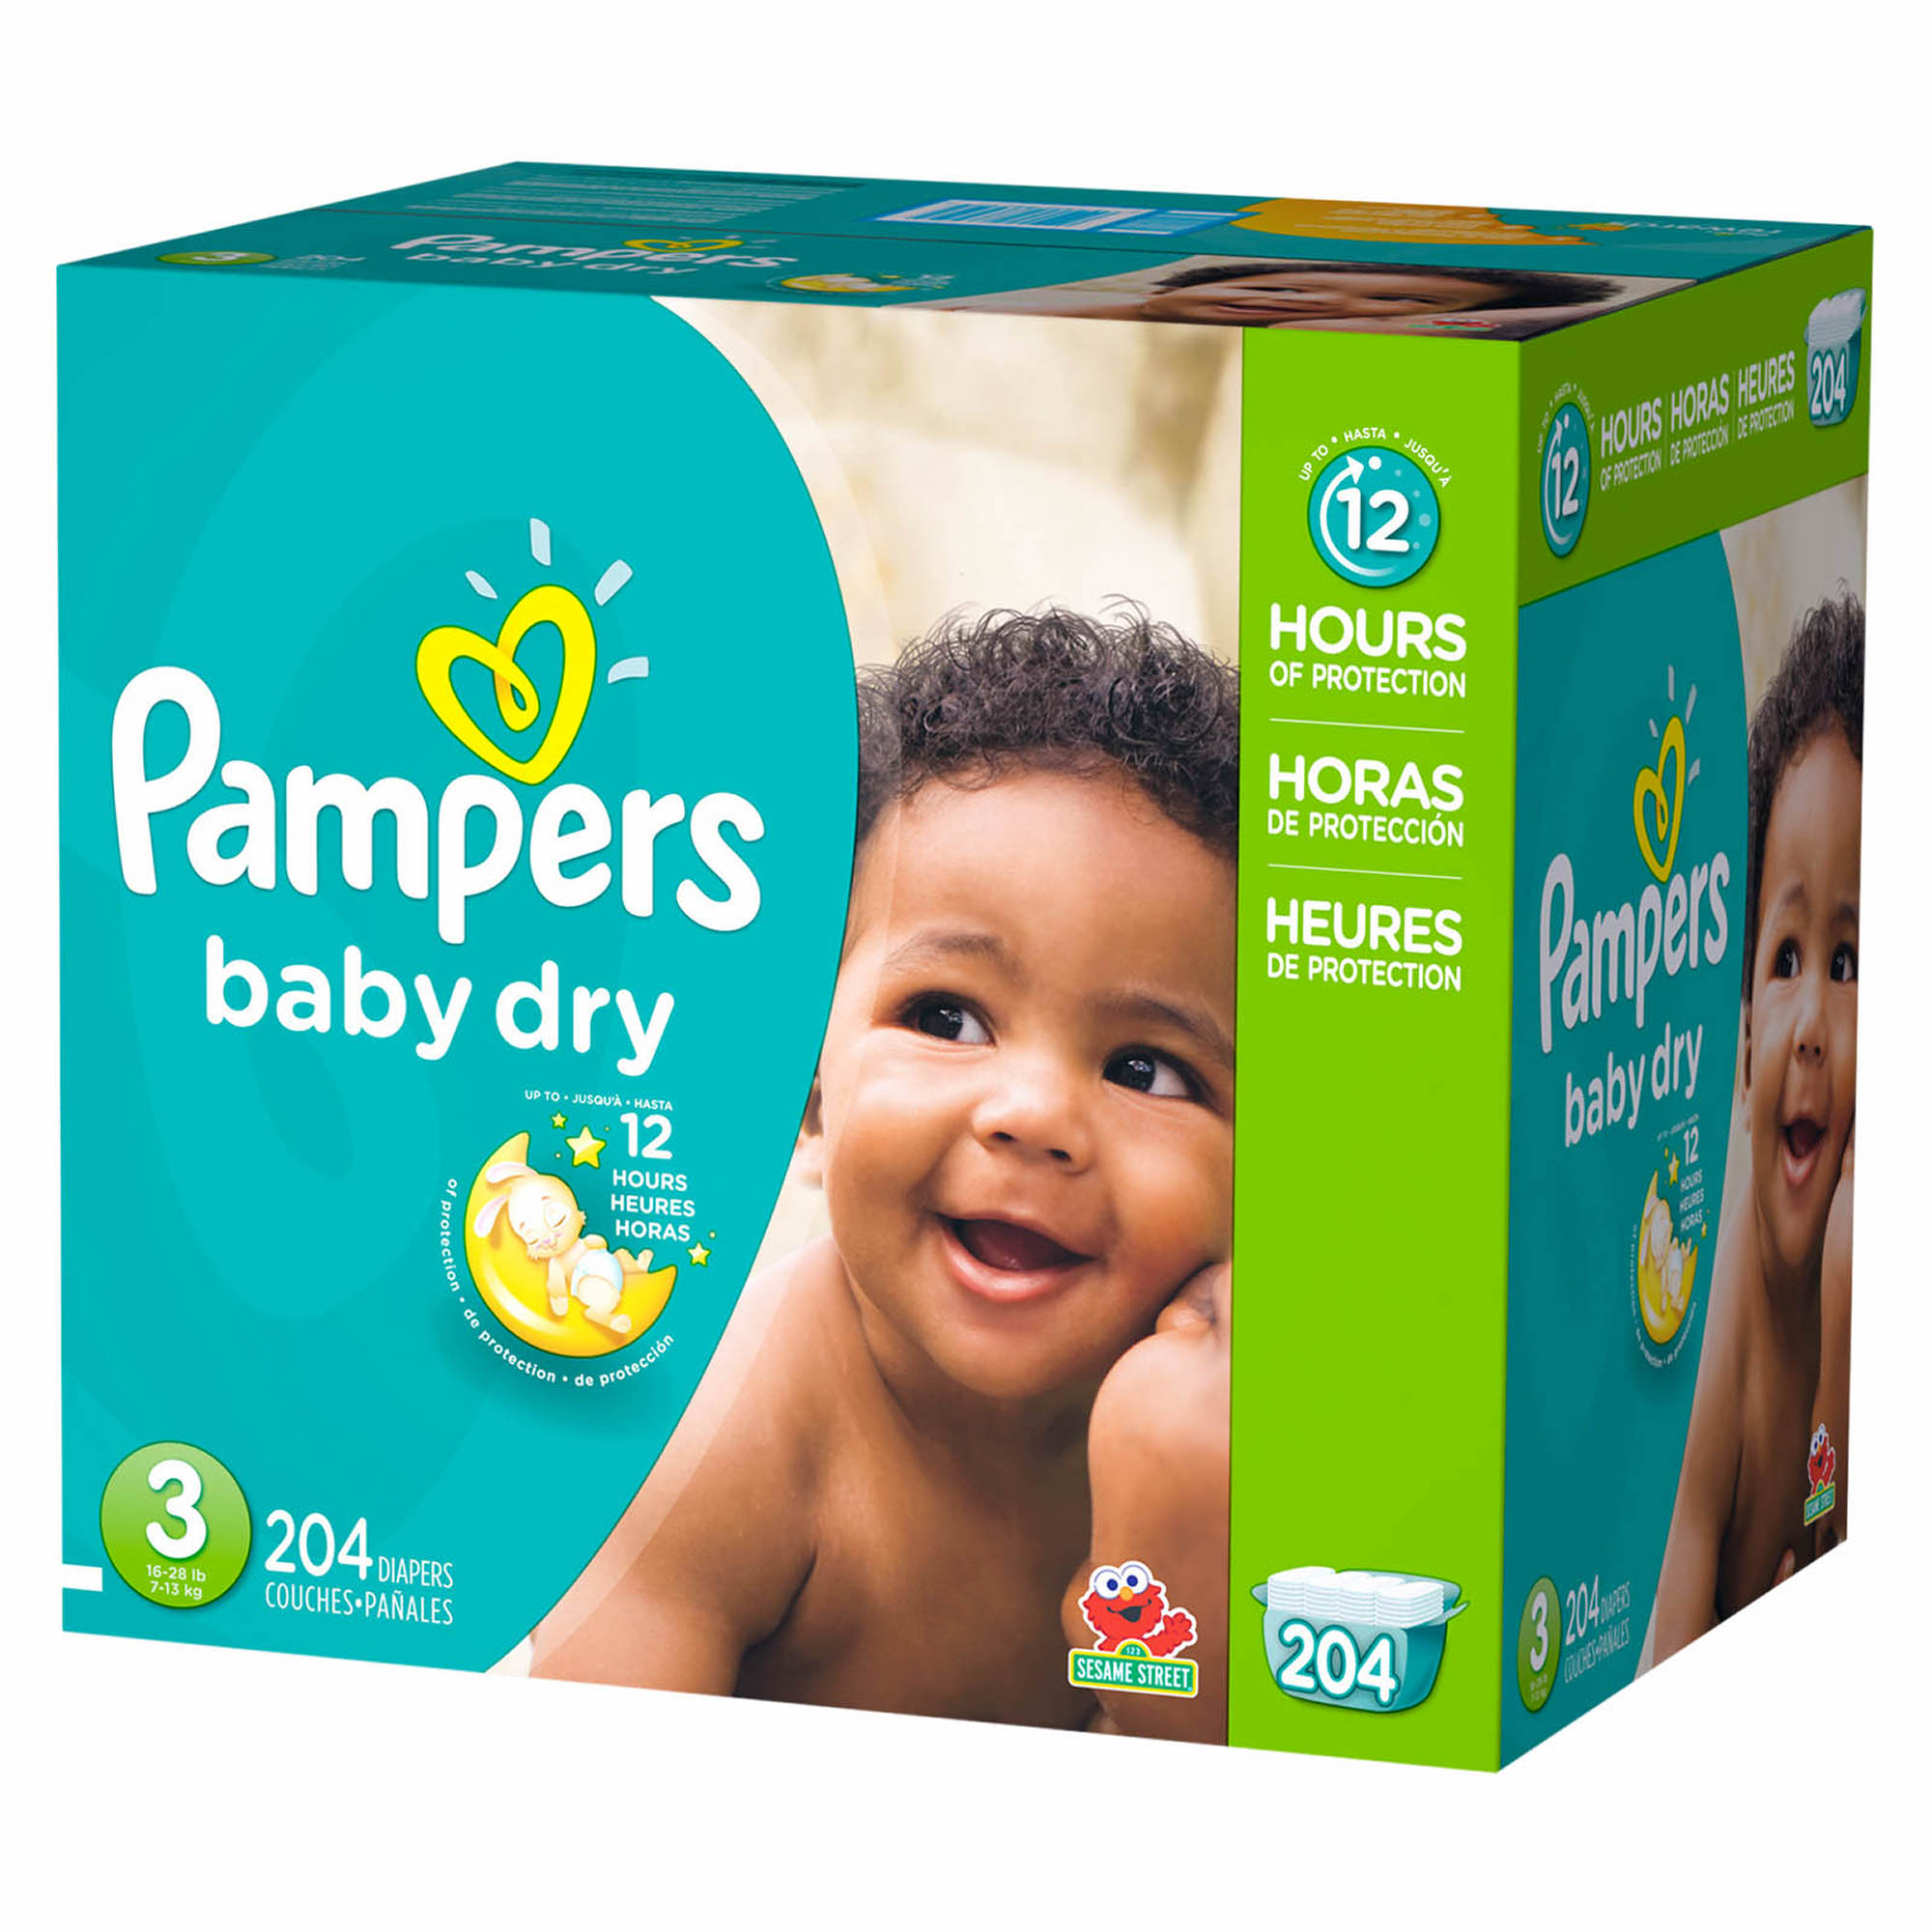 Pampers Swaddlers Diapers Super Pack - Size 3, 88 Count. Wrap your baby in Pampers Swaddlers diapers, our most trusted comfort and protection and the #1 Choice of US Hospitals.* Our Blankie Soft diaper with a unique Absorb Away Liner pulls wetness and mess away from baby's skin to help keep your baby comfortable.